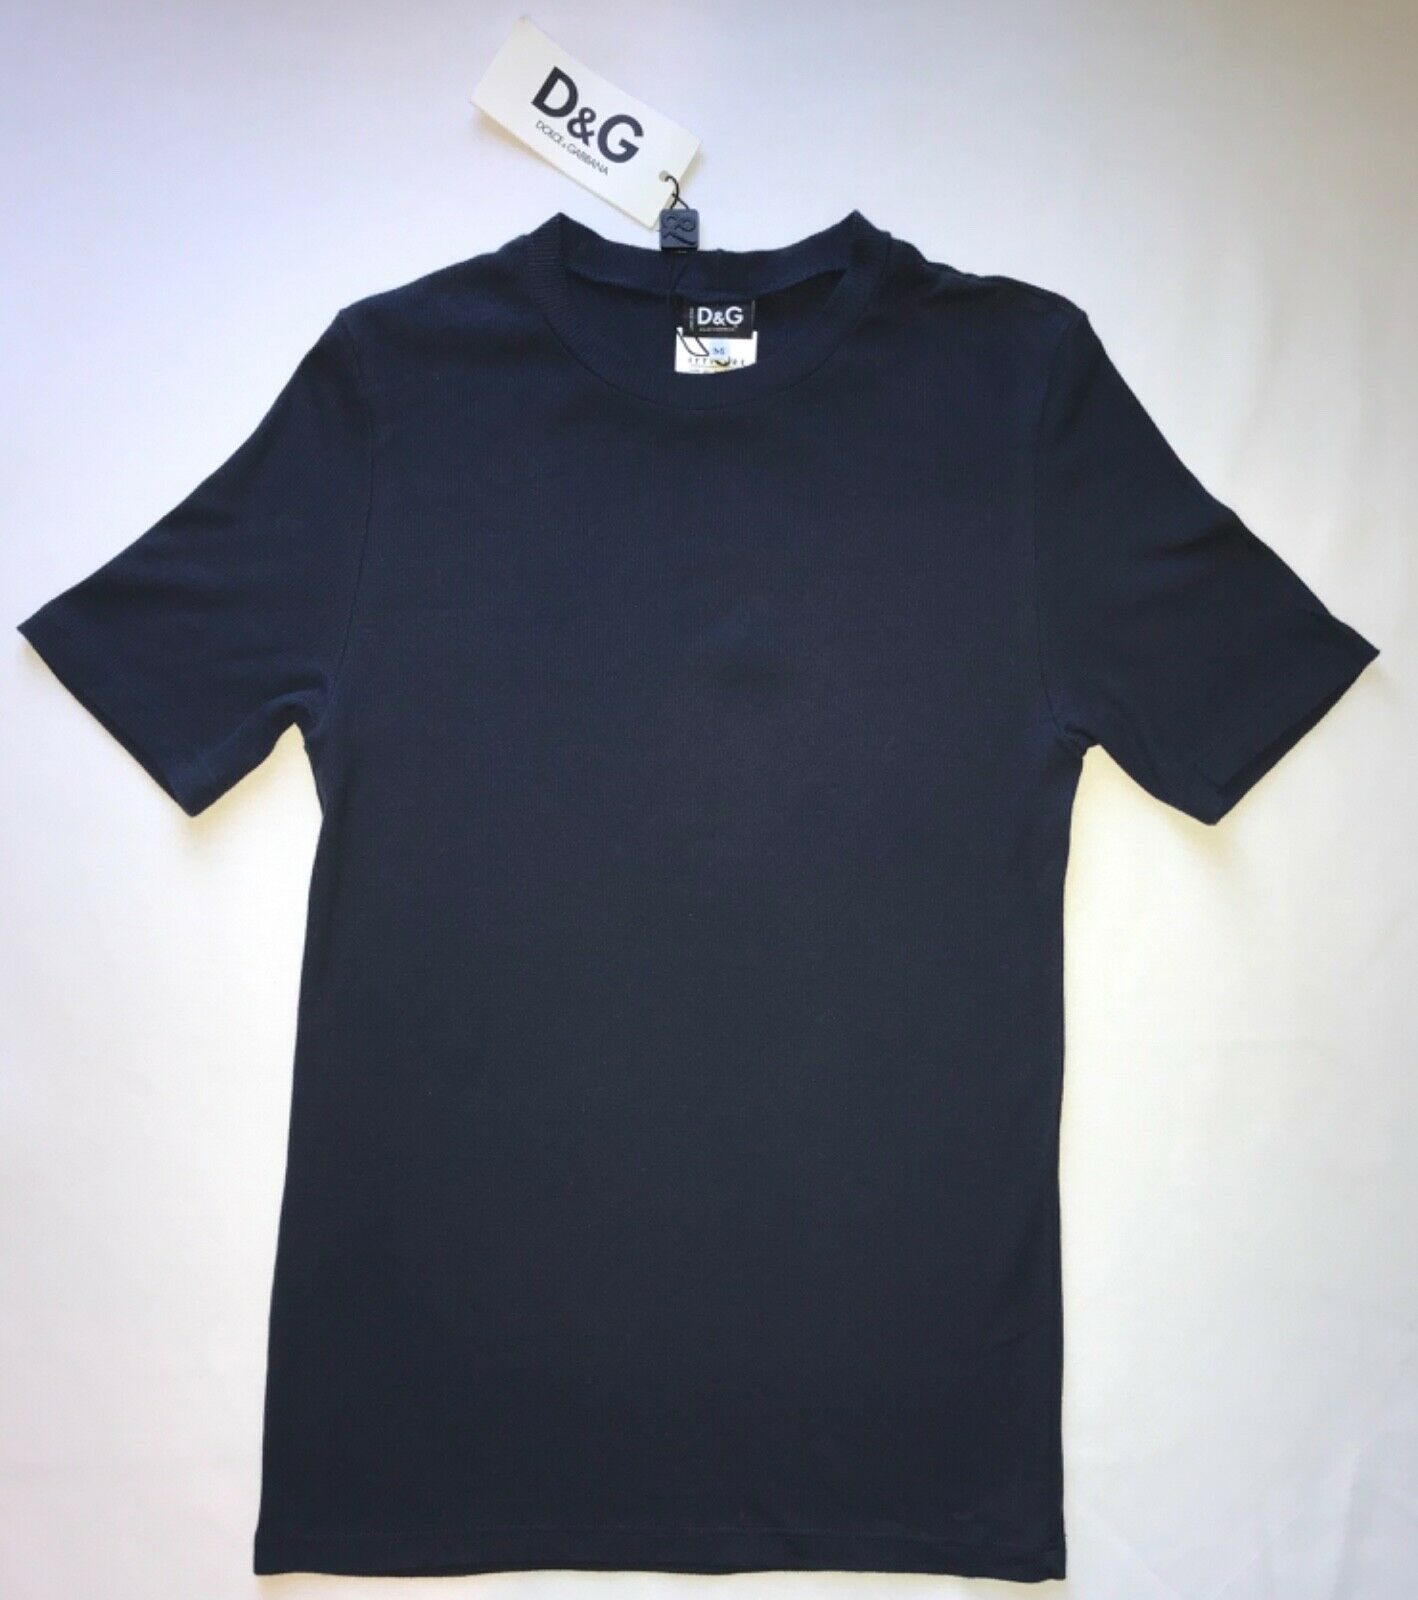 Primary image for D & G Dolce & Gabbana Ribbed T-shirt in Ribbed Navy Blue Stretch Cotton Blend, M